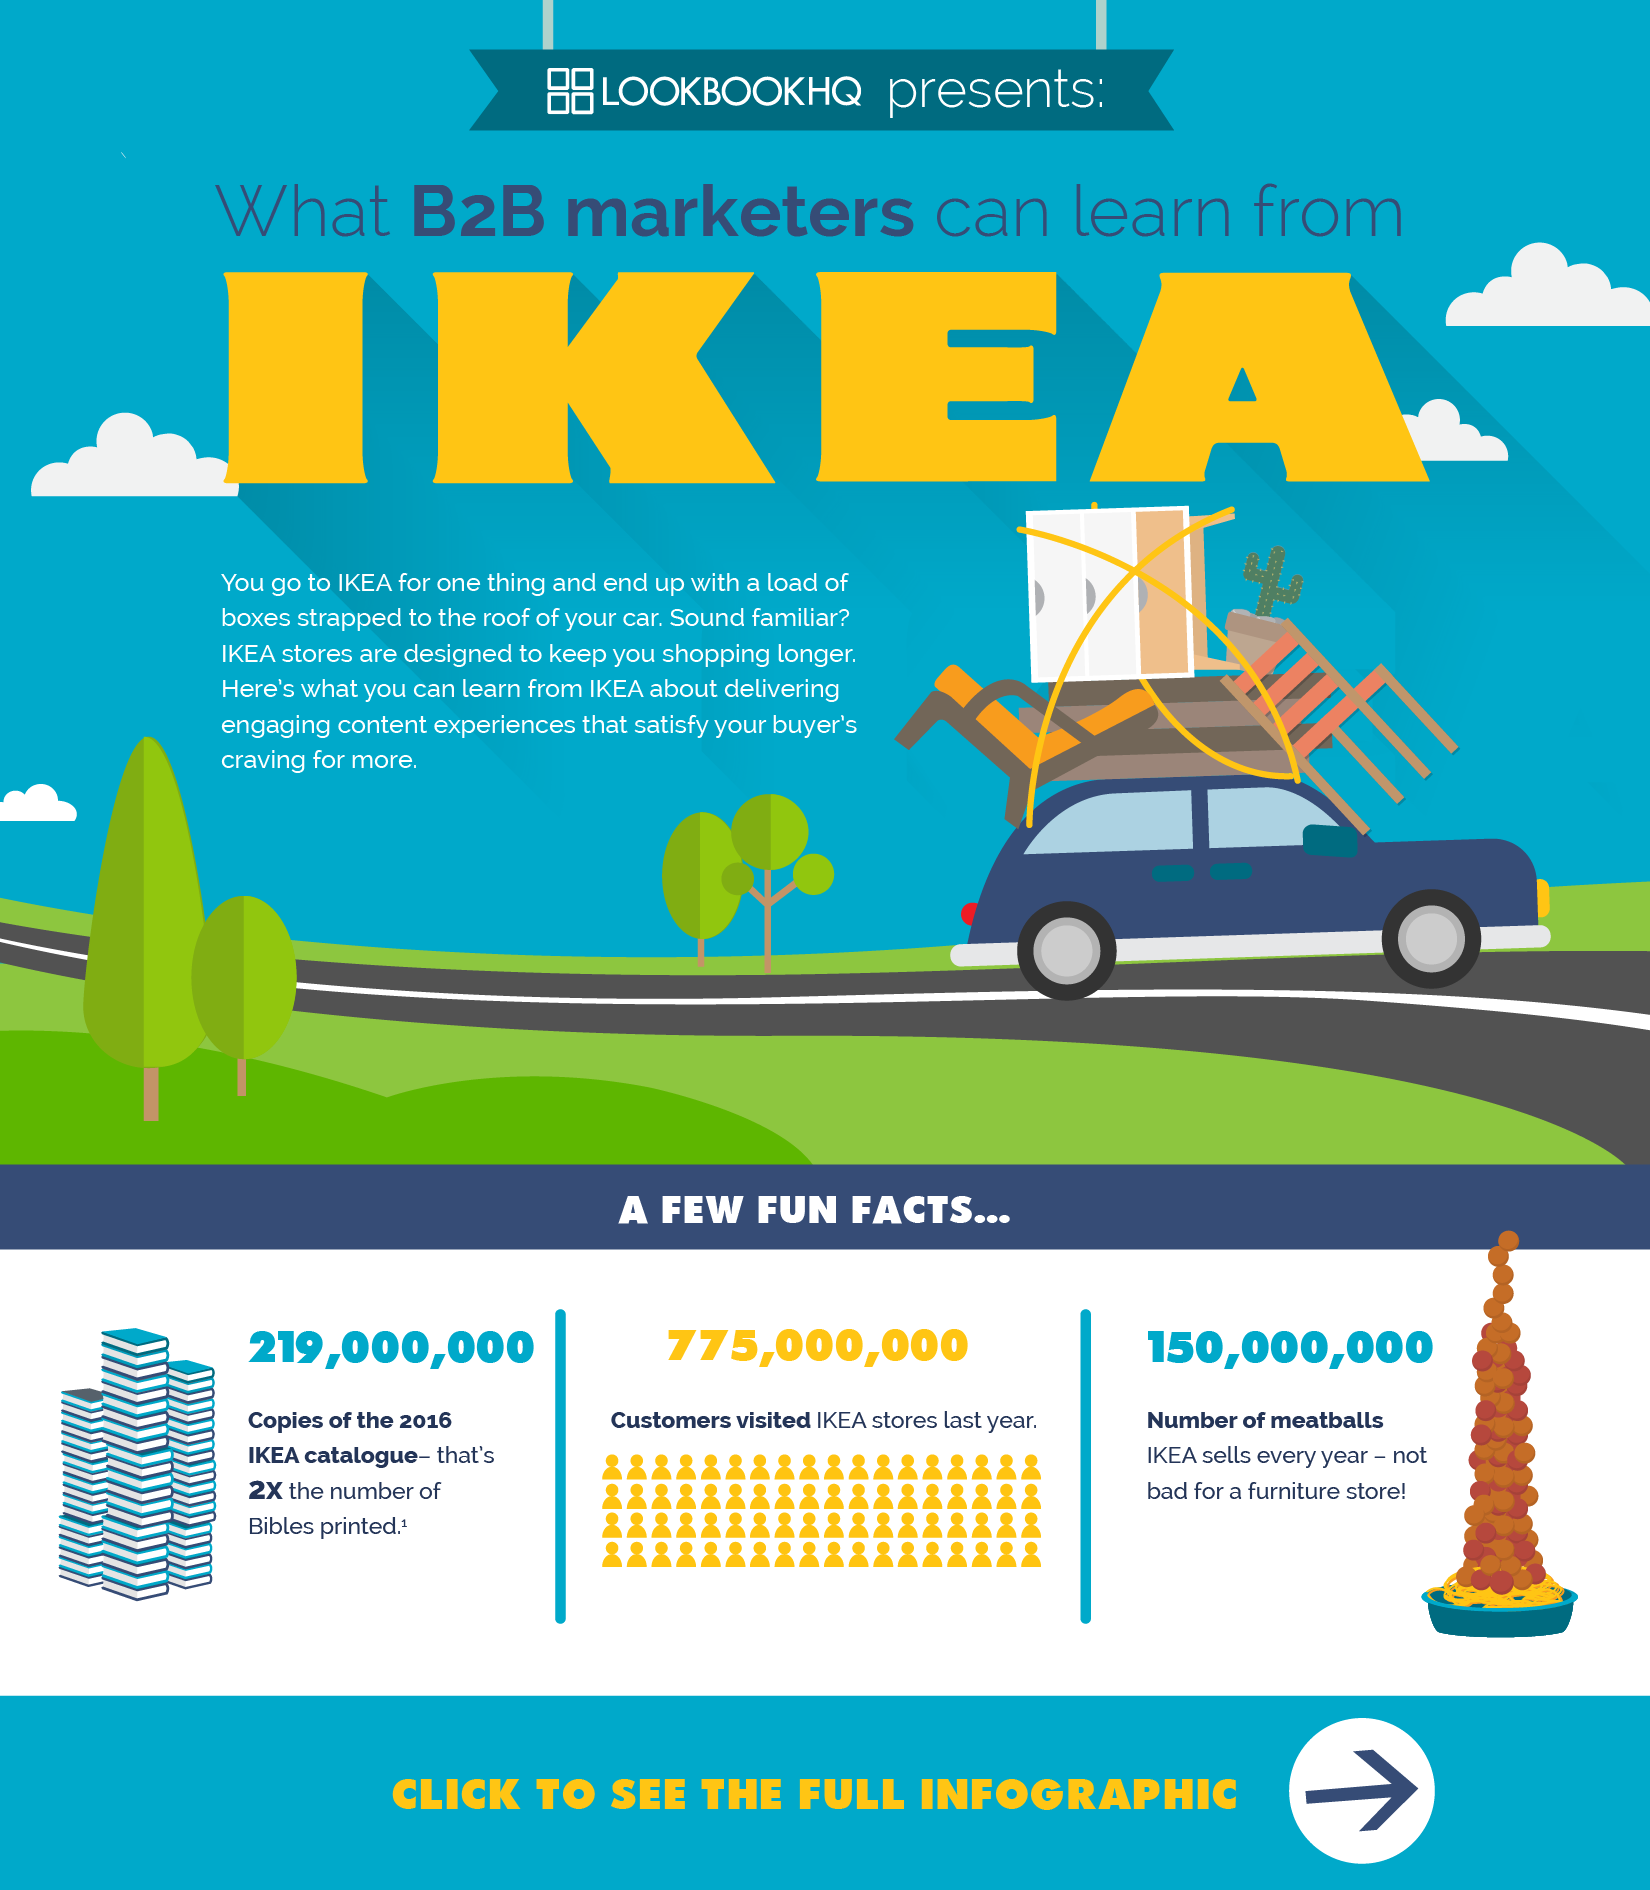 A image with link to infographic to bring about what B2B marketers can learn from ikea